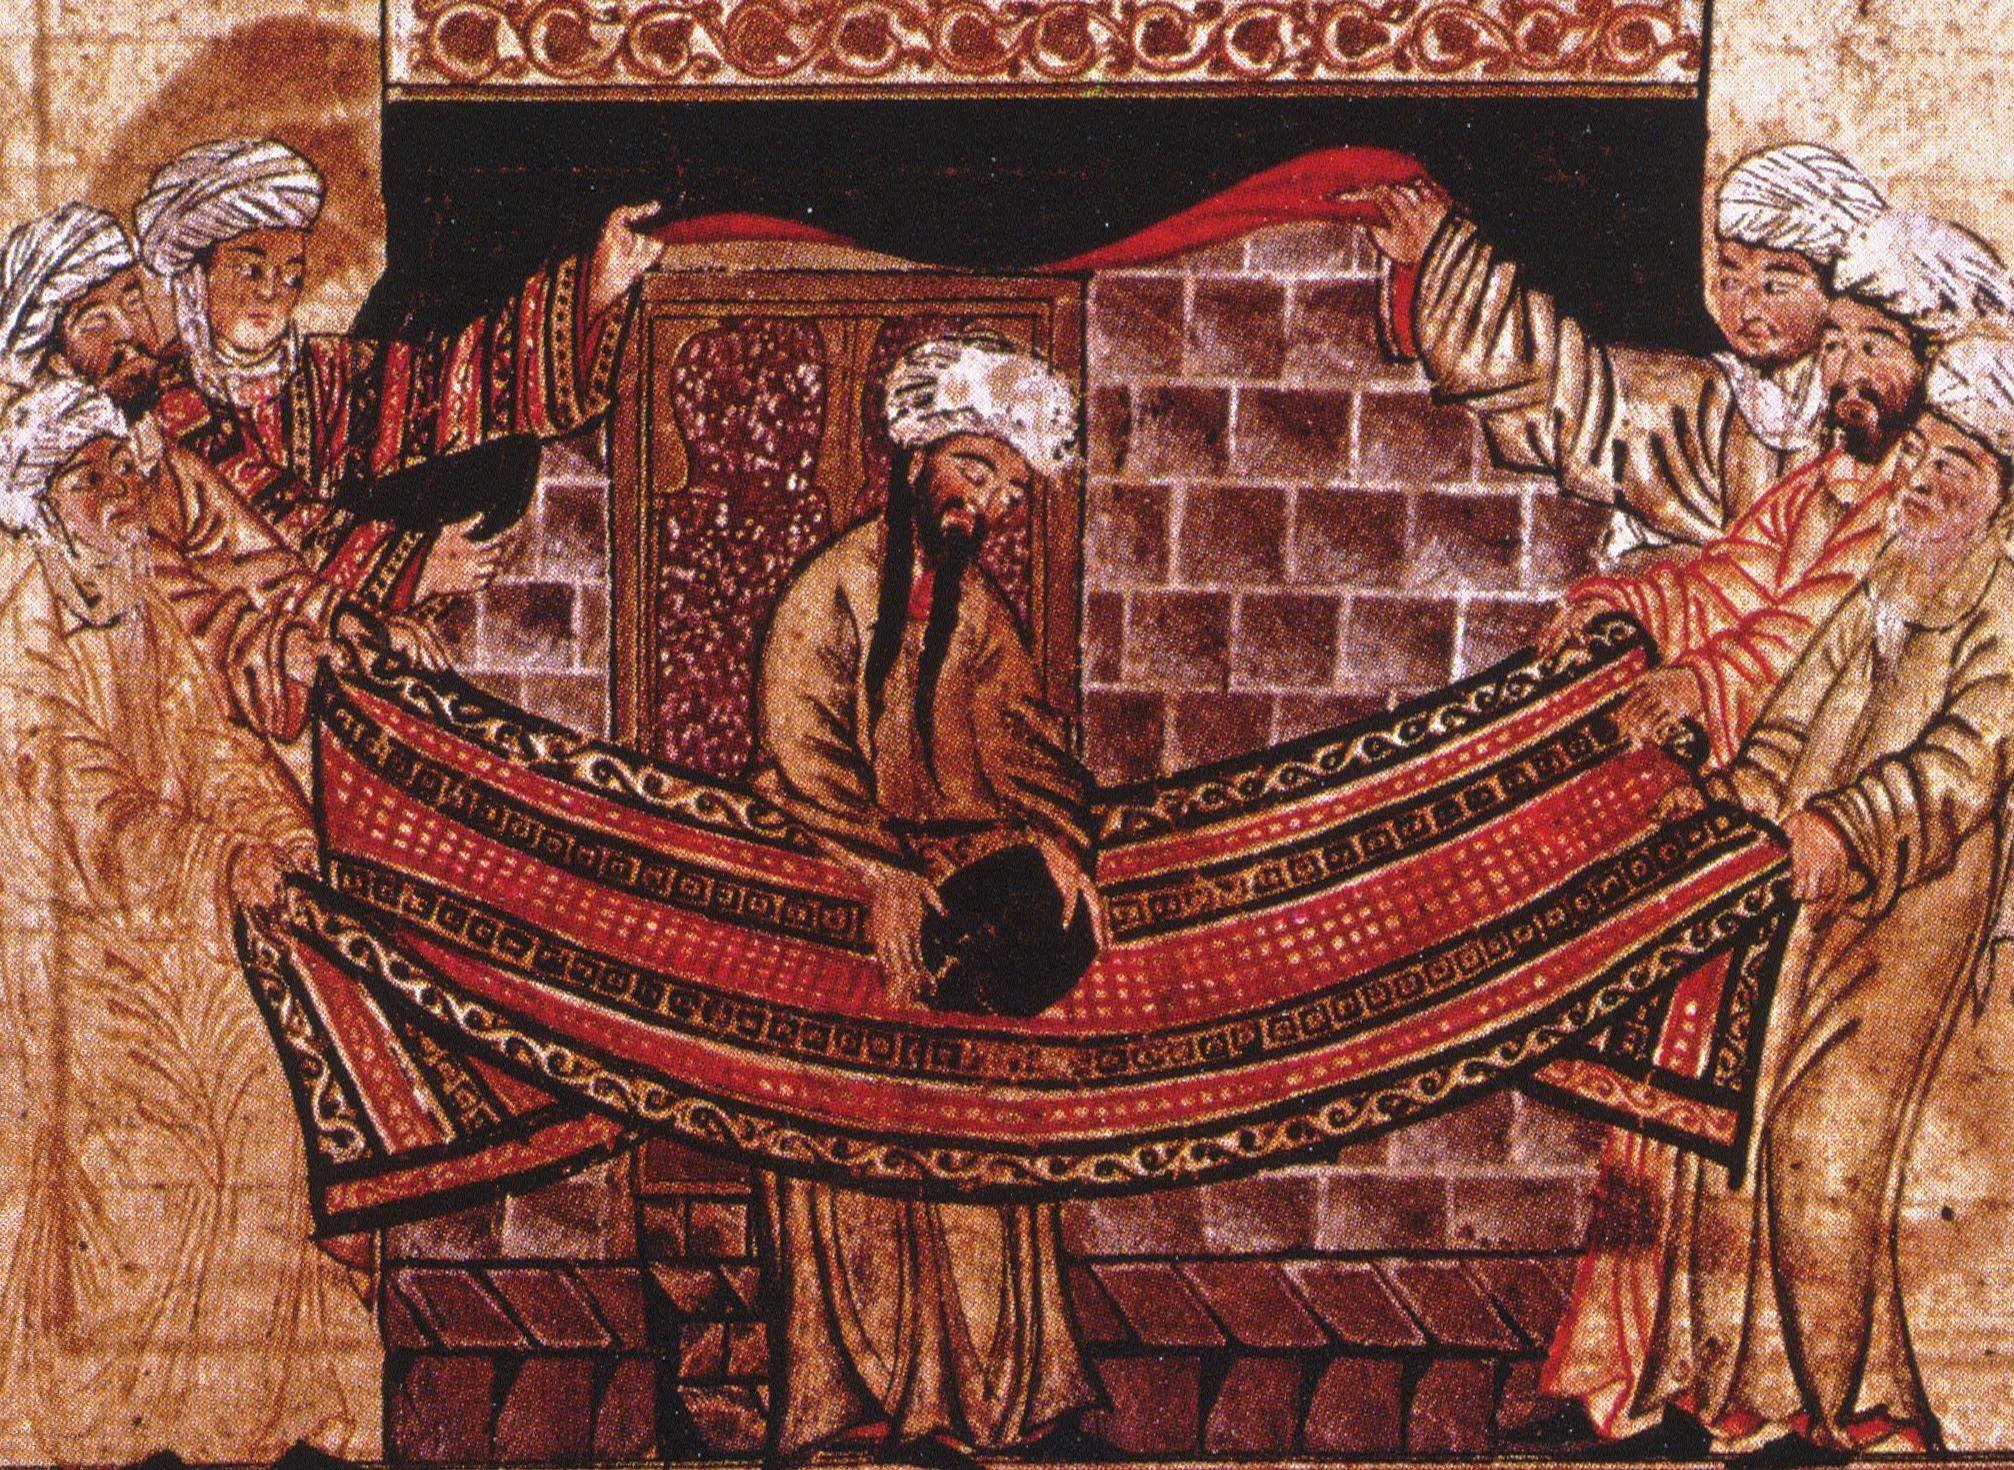 https://upload.wikimedia.org/wikipedia/commons/7/70/Mohammed_kaaba_1315.jpg